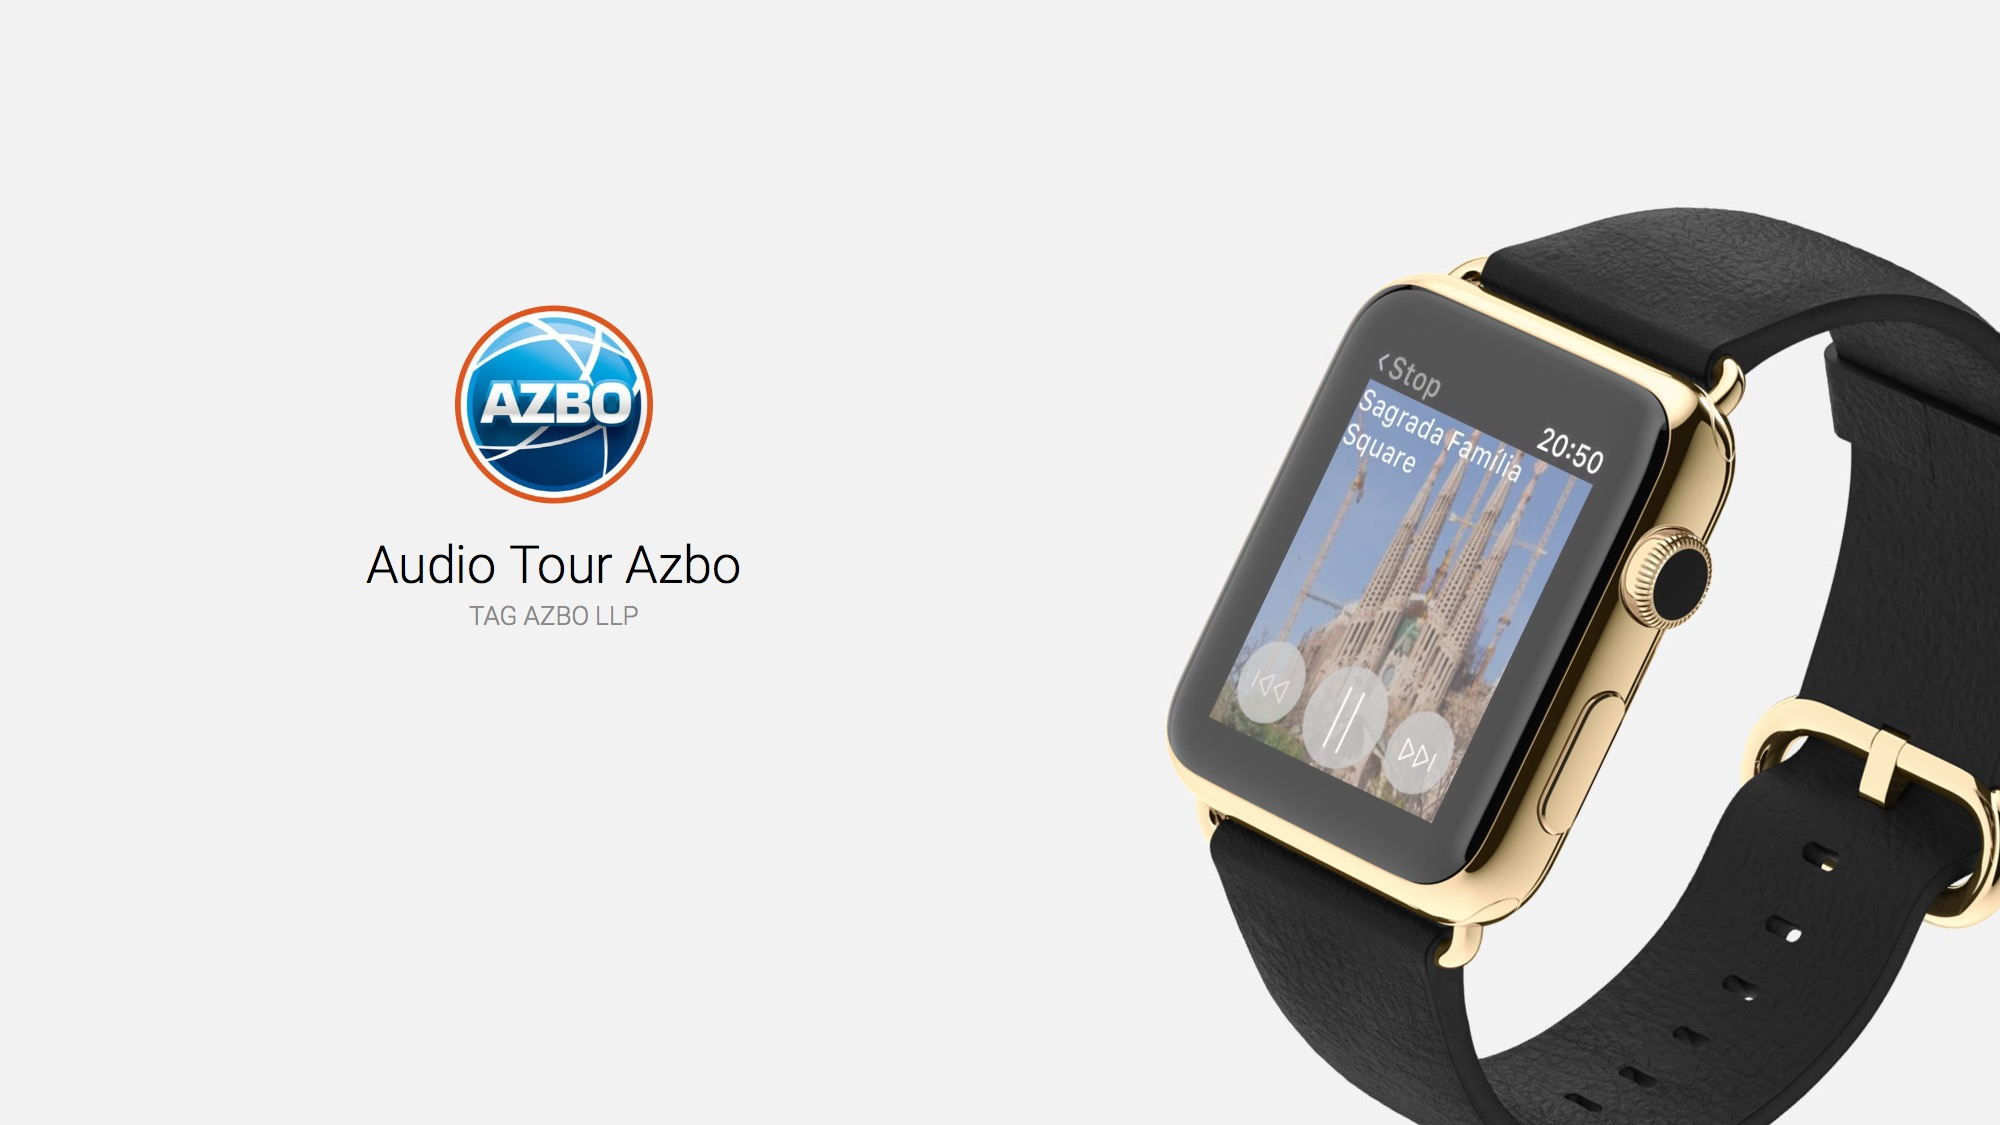 Audio tour Azbo Uses Apple Watch to Be Your Tour Guide